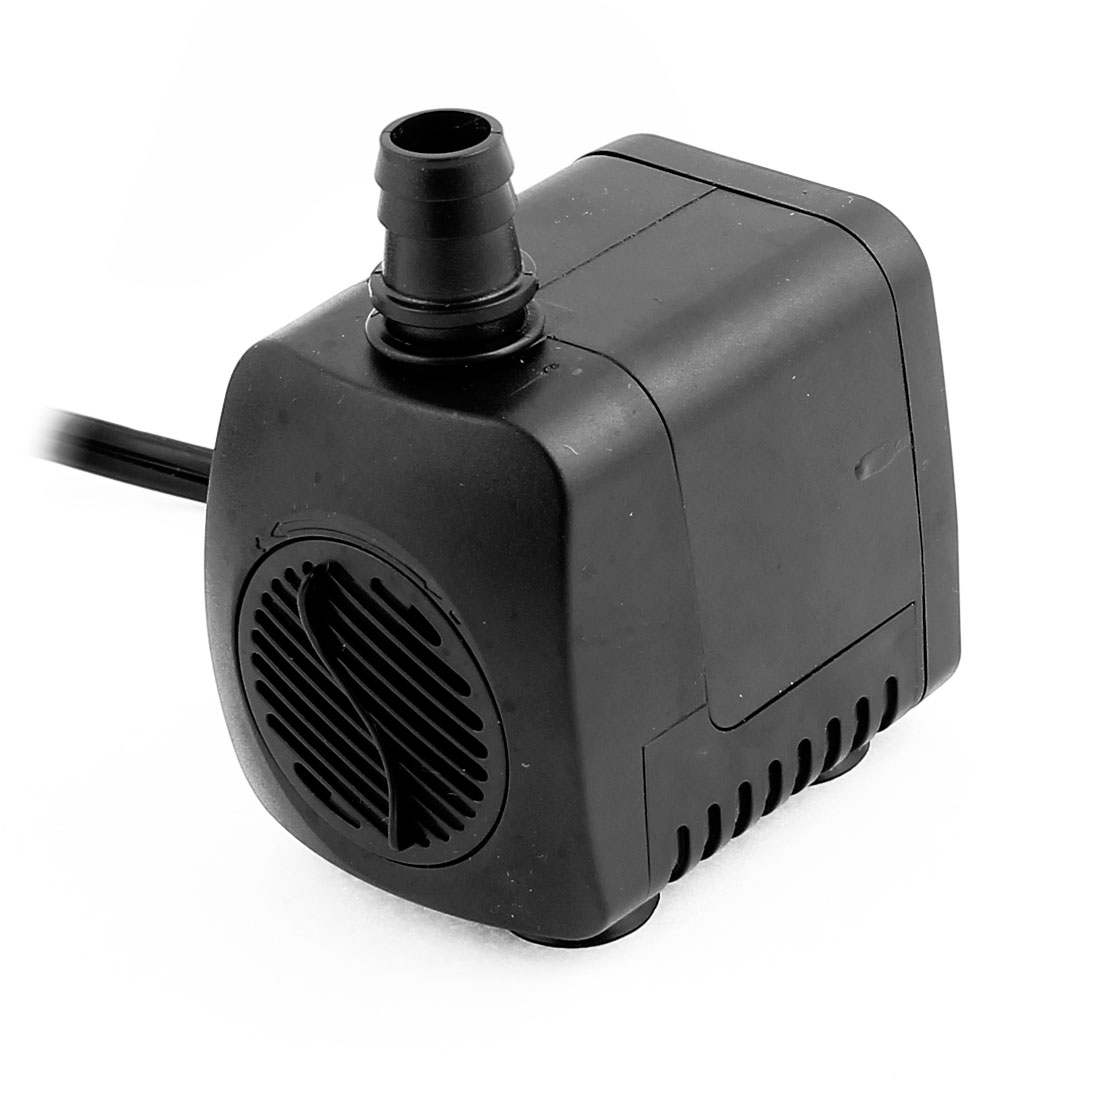 AC 110V-120V US Plug 15W Electric Submersible Water Pump Aquarium Fountain